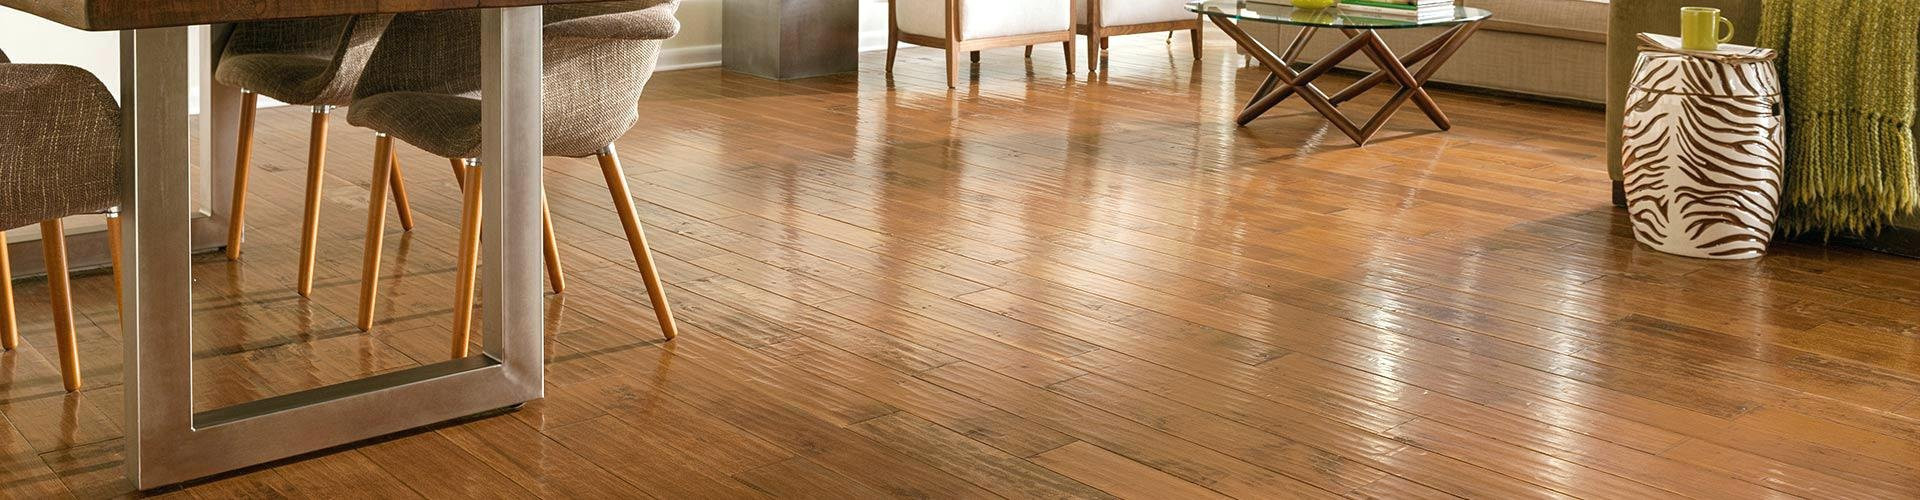 grey hardwood floors lowes of download 30 luxury ceramic floor tile lowes missing person search com for ceramic floor tile lowes fresh od grain tile bathroom wood shower no grout porcelain pros and